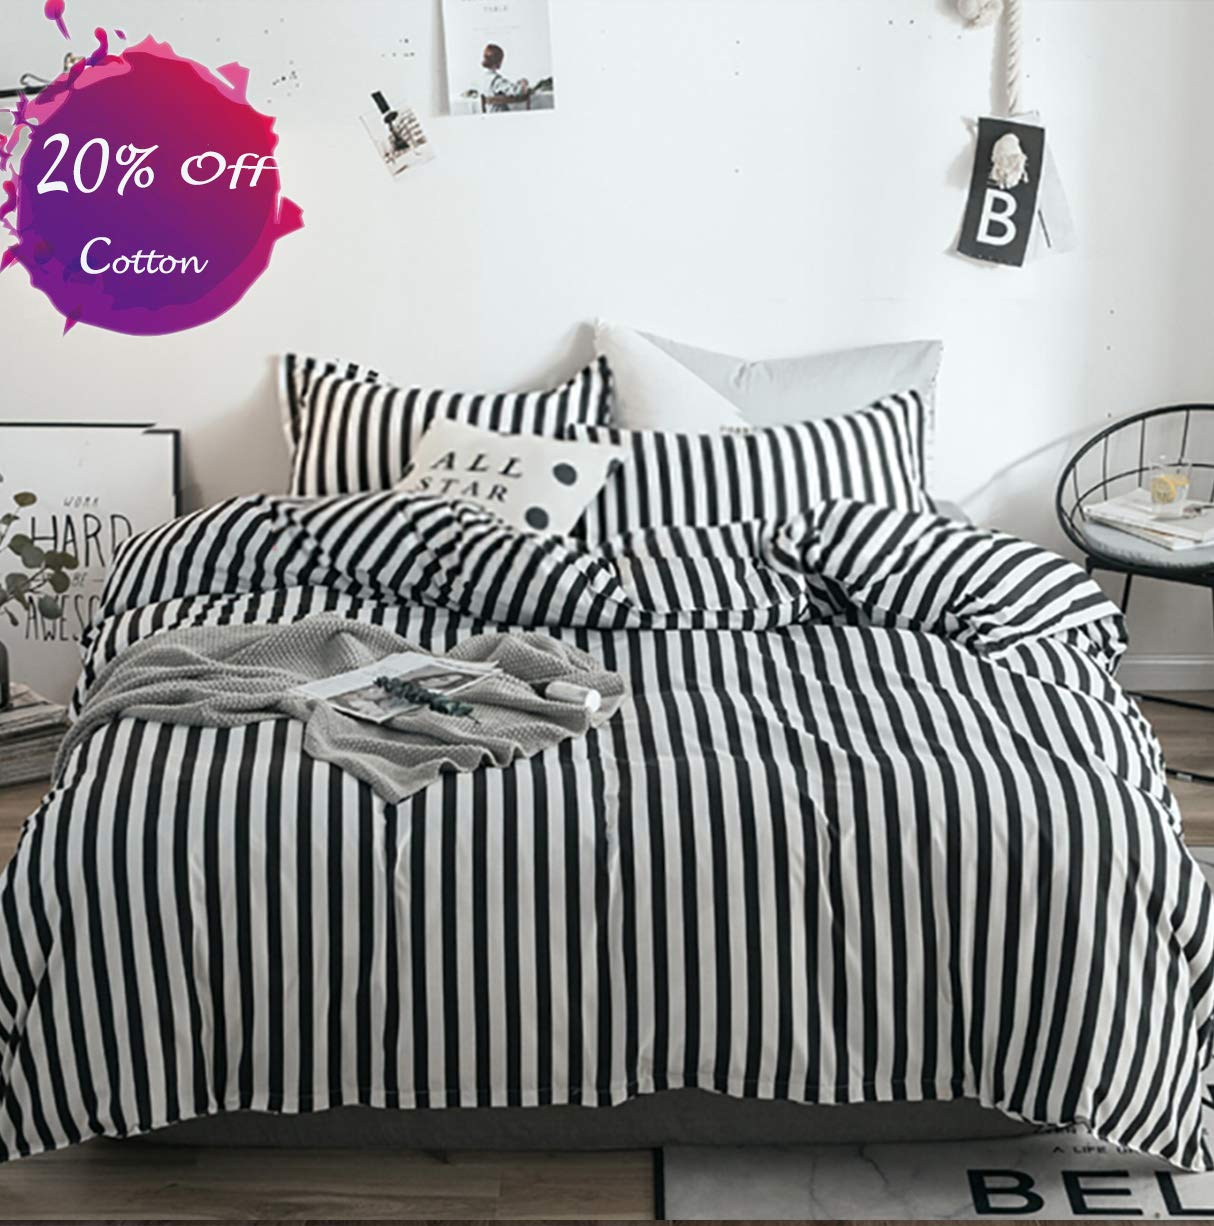 karever Black White Striped Duvet Cover Set Queen Kids Cotton Bedding Full Black Vertical Ticking Stripes Pattern Printed on White Comforter Cover Set for Boys Girls Teens